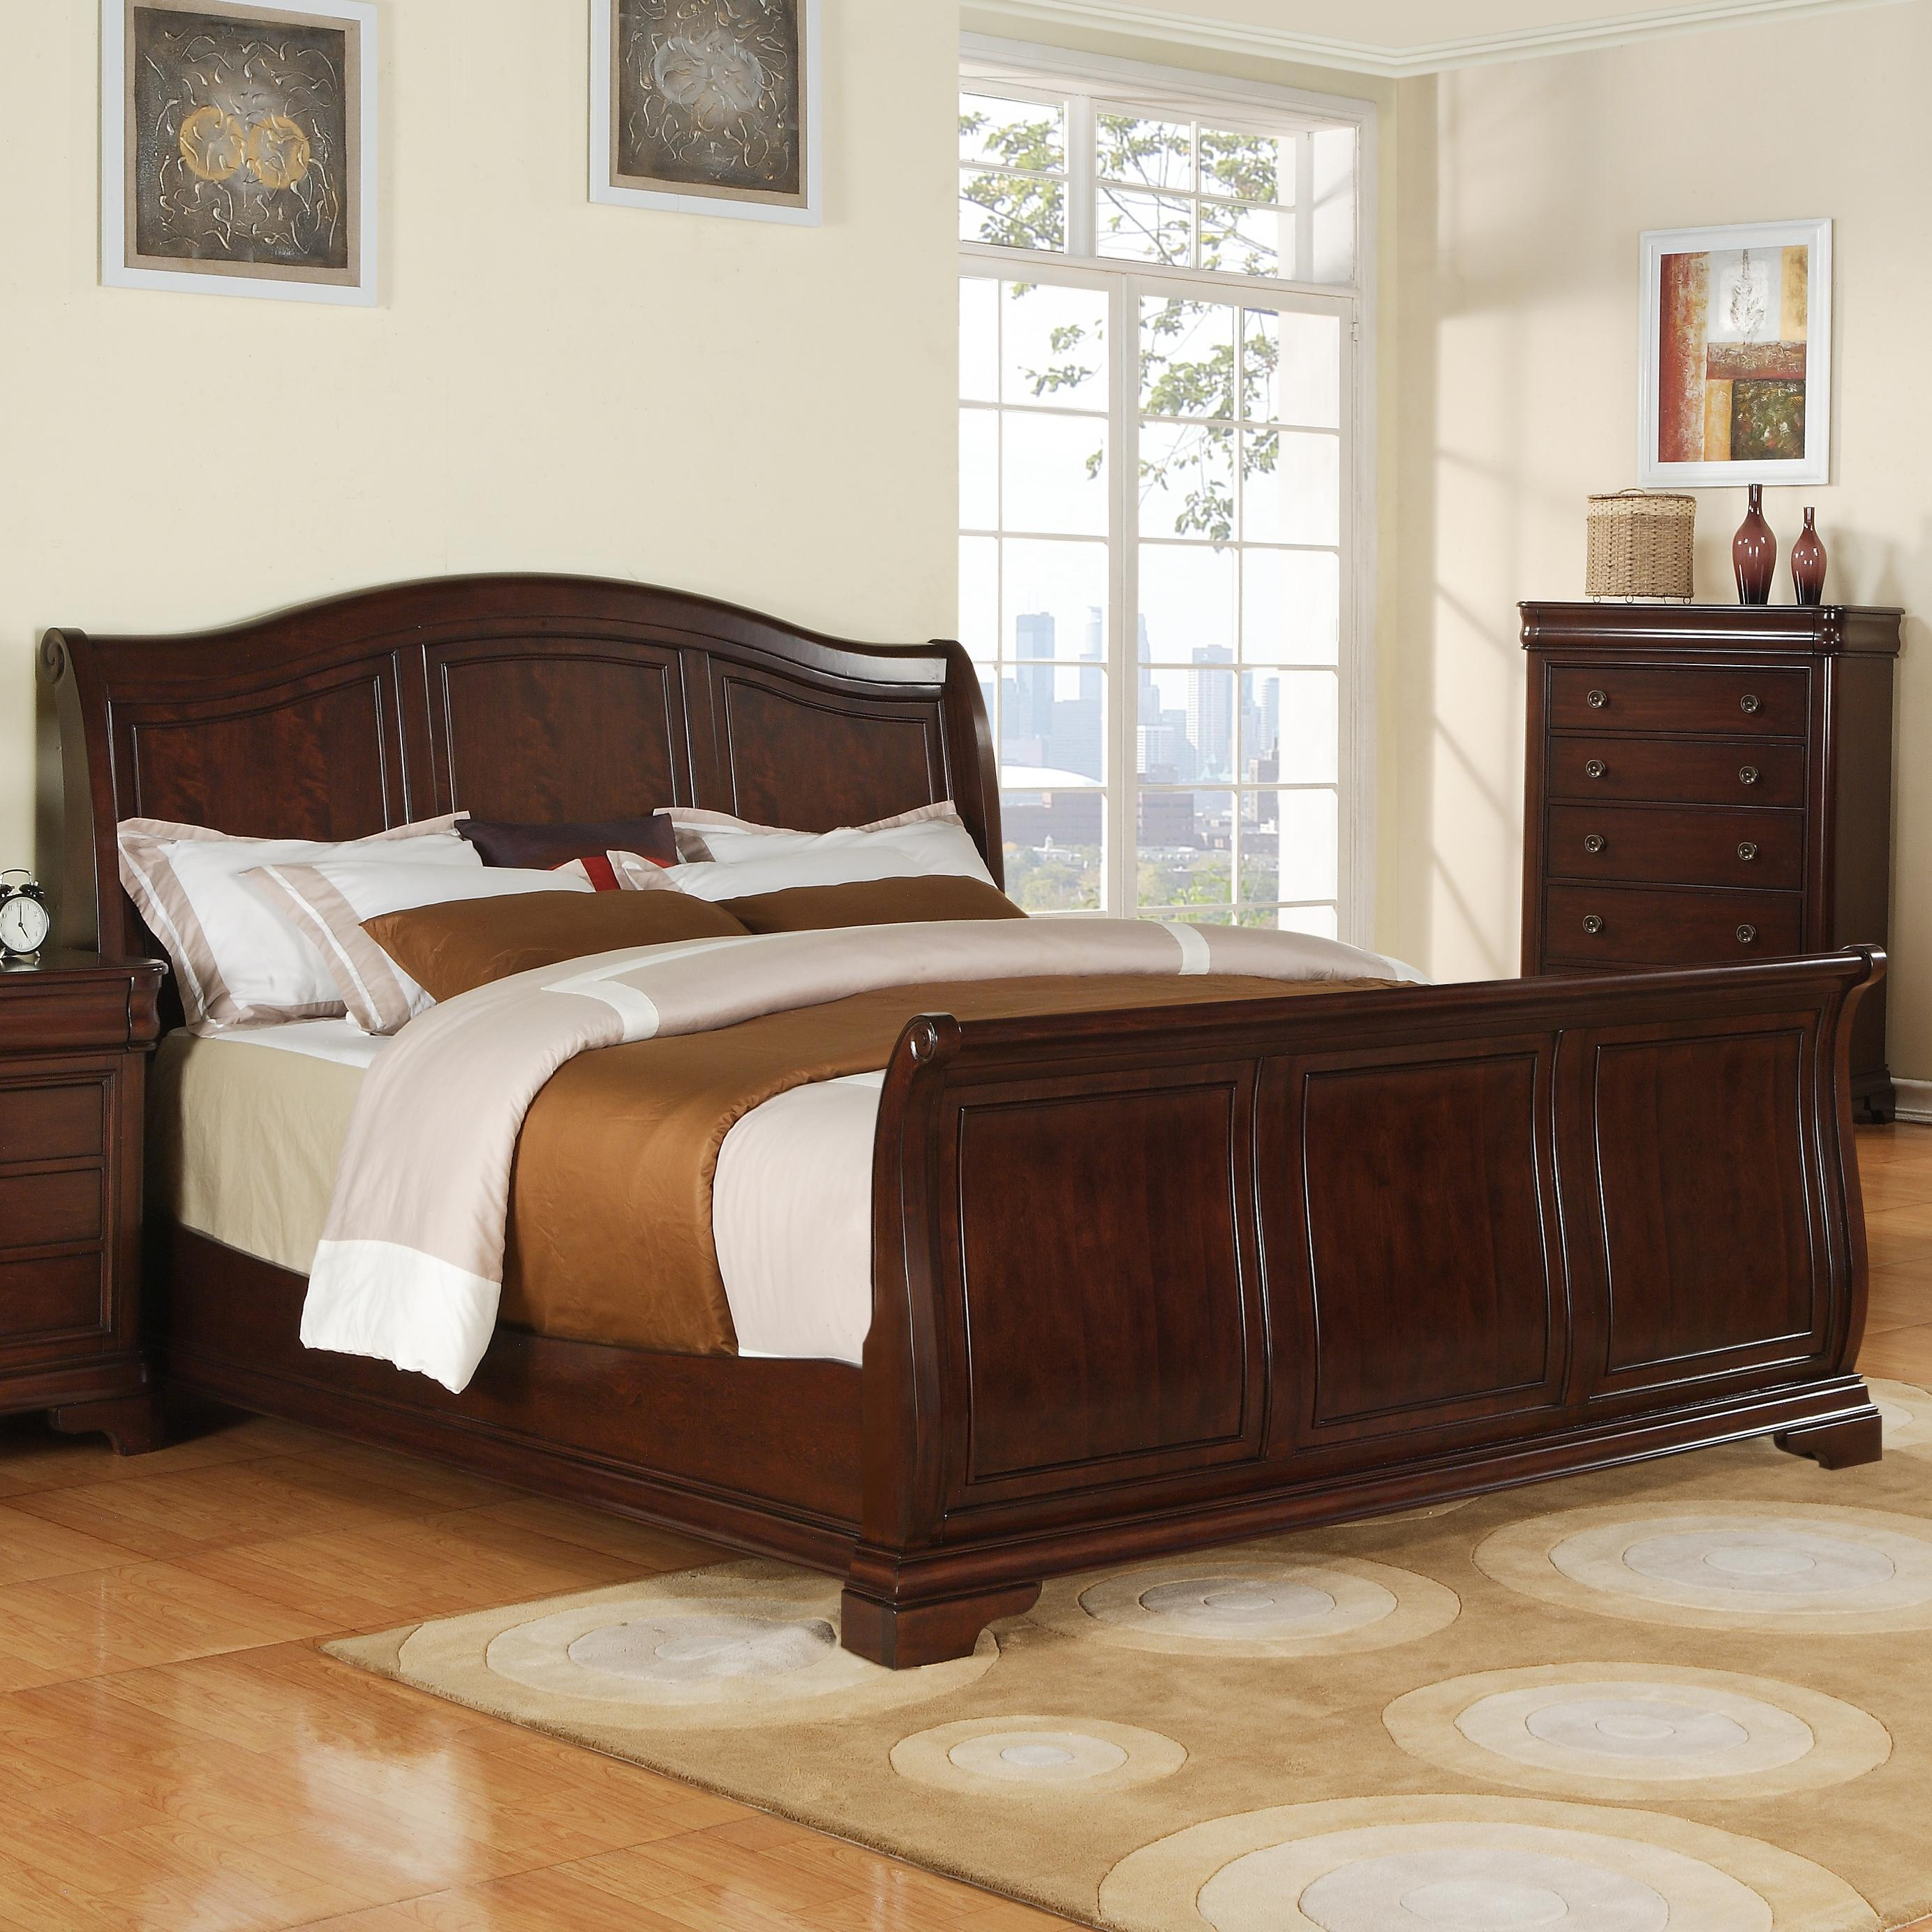 elements international cameron queen transitional arched sleigh bed johnny janosik sleigh beds. Black Bedroom Furniture Sets. Home Design Ideas